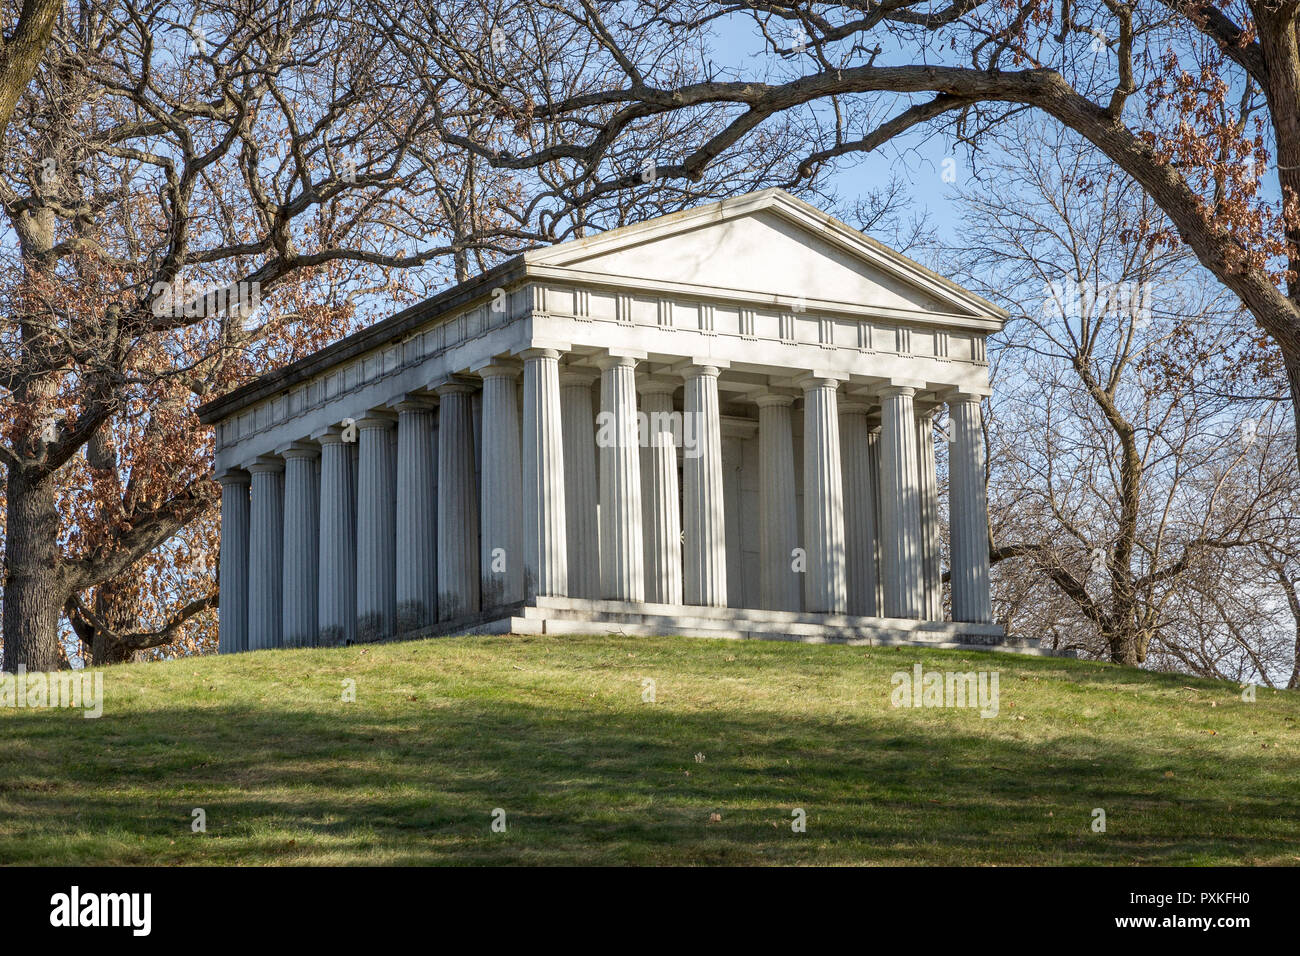 The Lowry-Goodrich Mausoleum in the Lakewood Cemetery in Minneapolis, Minnesota is a replica of the Parthenon in Athens, Greece. - Stock Image